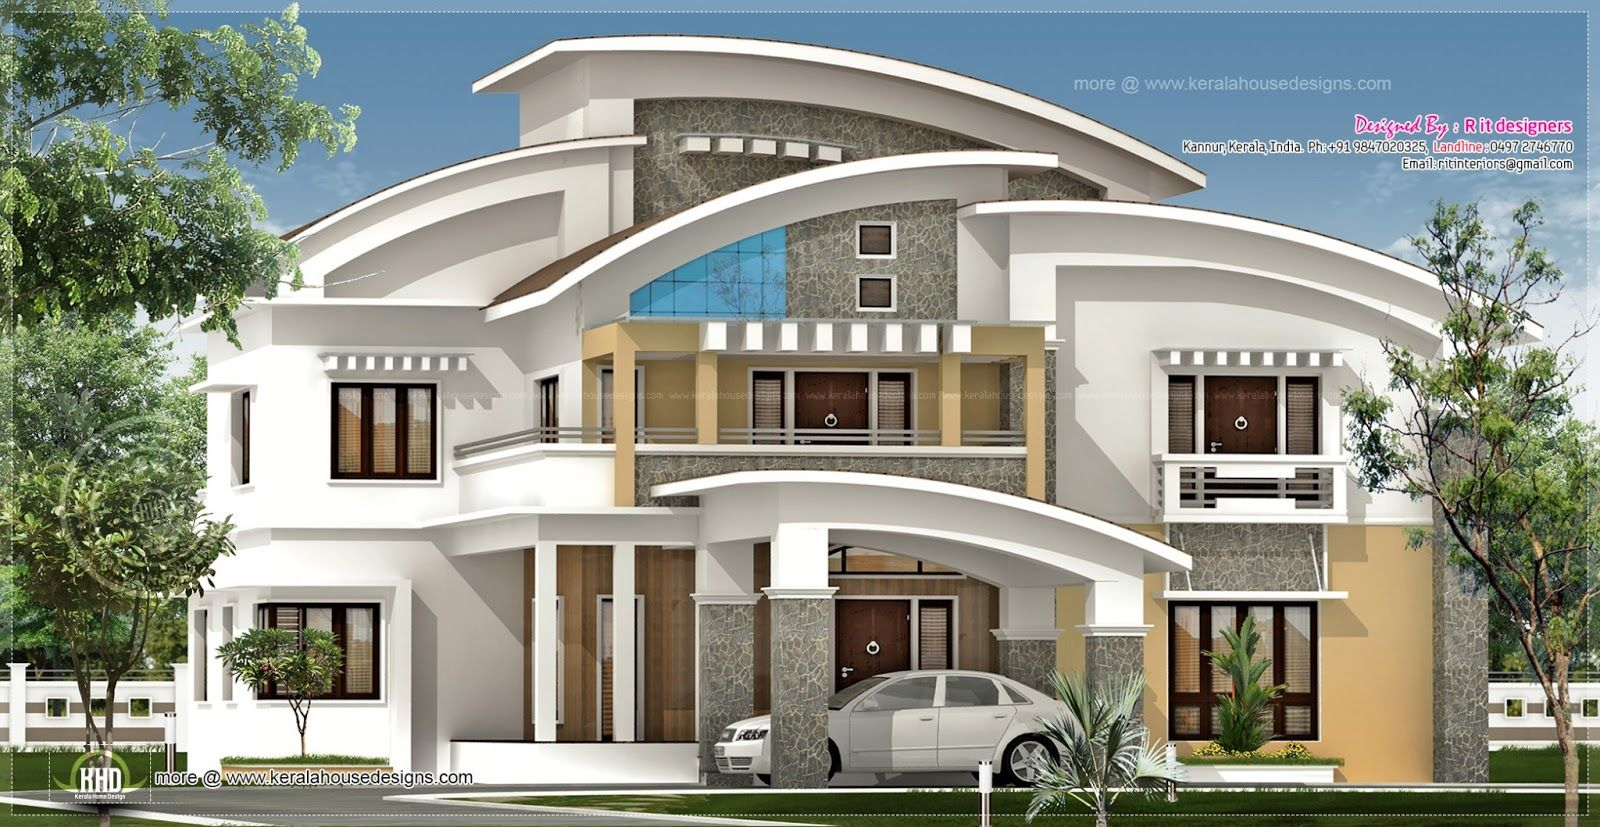 Awesome luxury homes plans 8 french country luxury home for Home exterior design